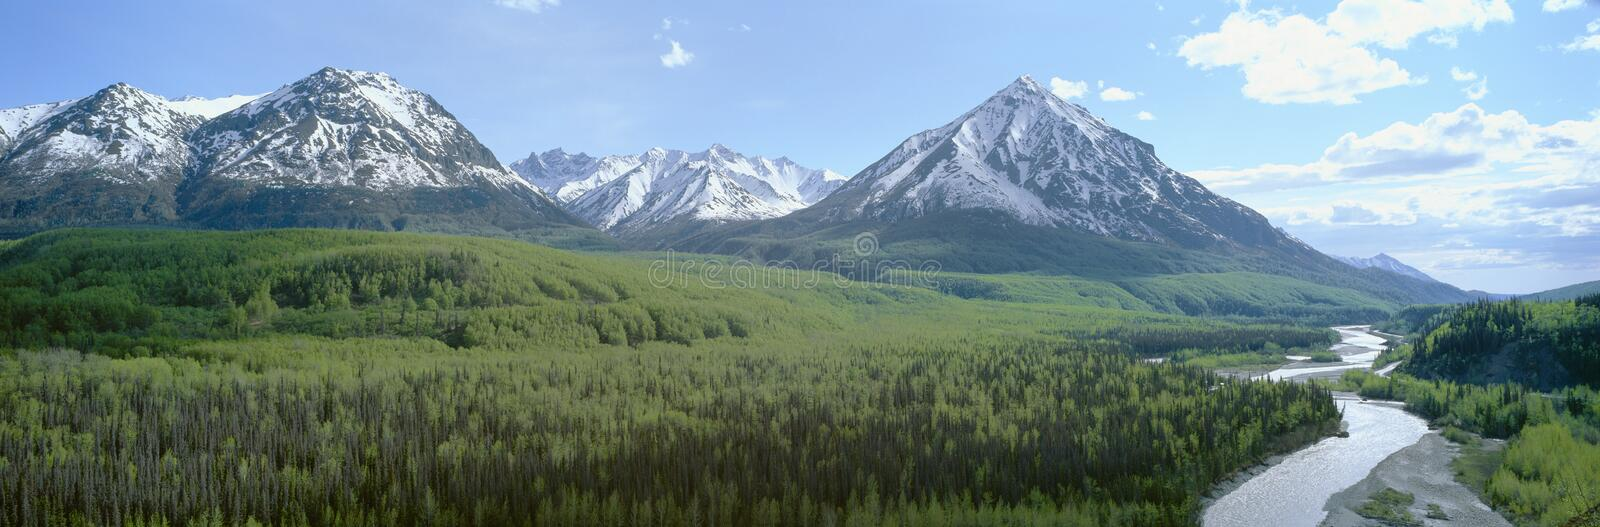 Snowy mountains,. Green forests and river in Matanuska Valley, Alaska royalty free stock photos